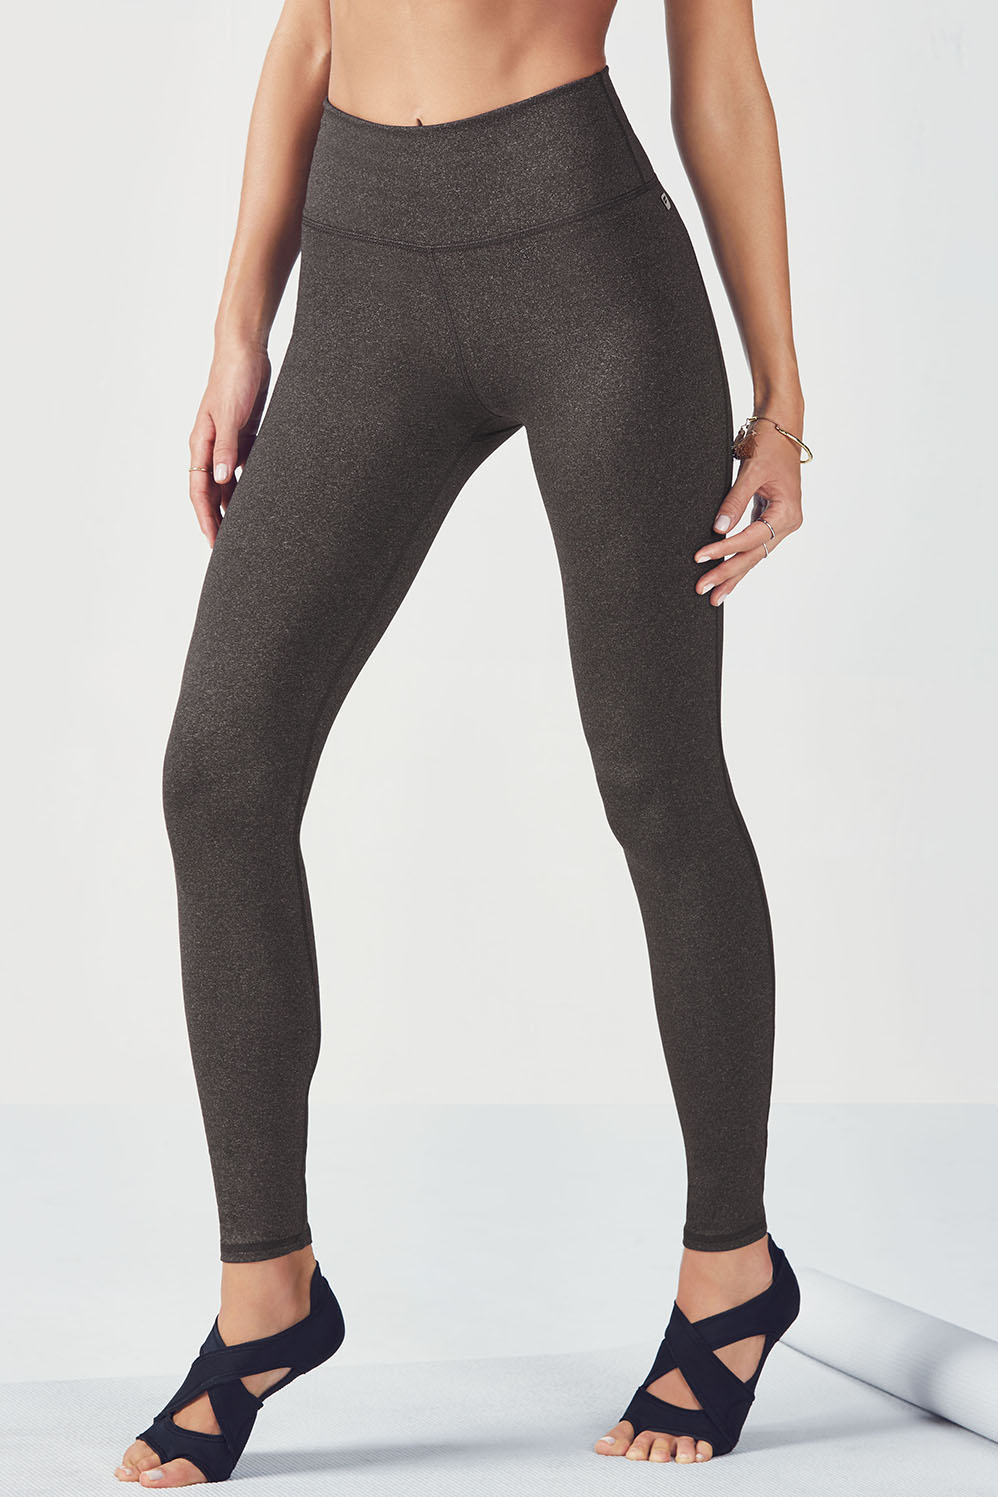 legging taille haute lisette en charoal heather v tements de sport fabletics. Black Bedroom Furniture Sets. Home Design Ideas